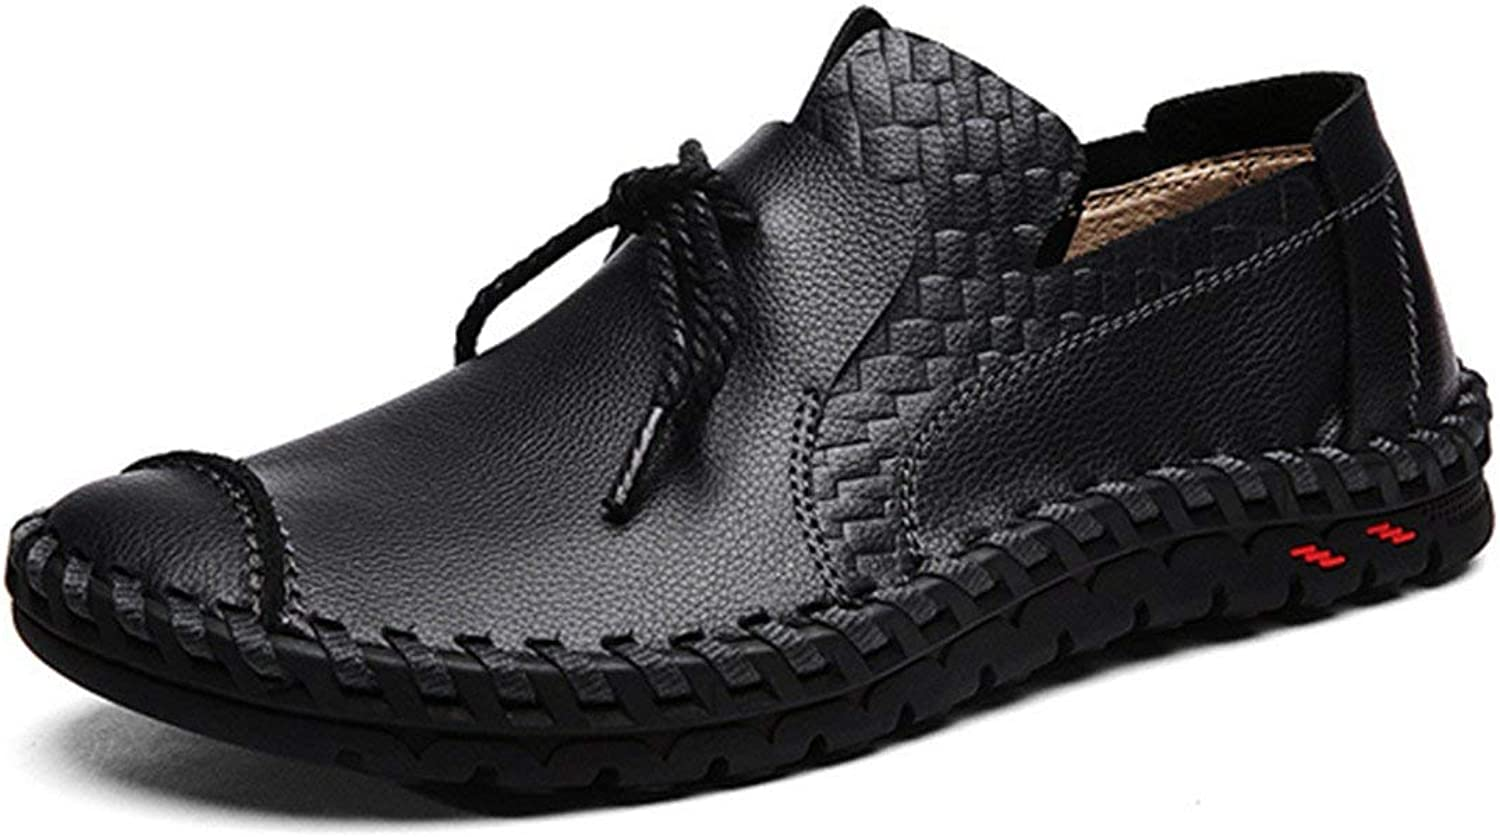 Gracosy Men's Loafers Suede Leather Moccasins Boat & Driving Slip-On Flat shoes Outdoor Slipper Spring Summer Casual Handmade Men's shoes Work Comfort Leather Lace-Up Loafer Flats Pumps